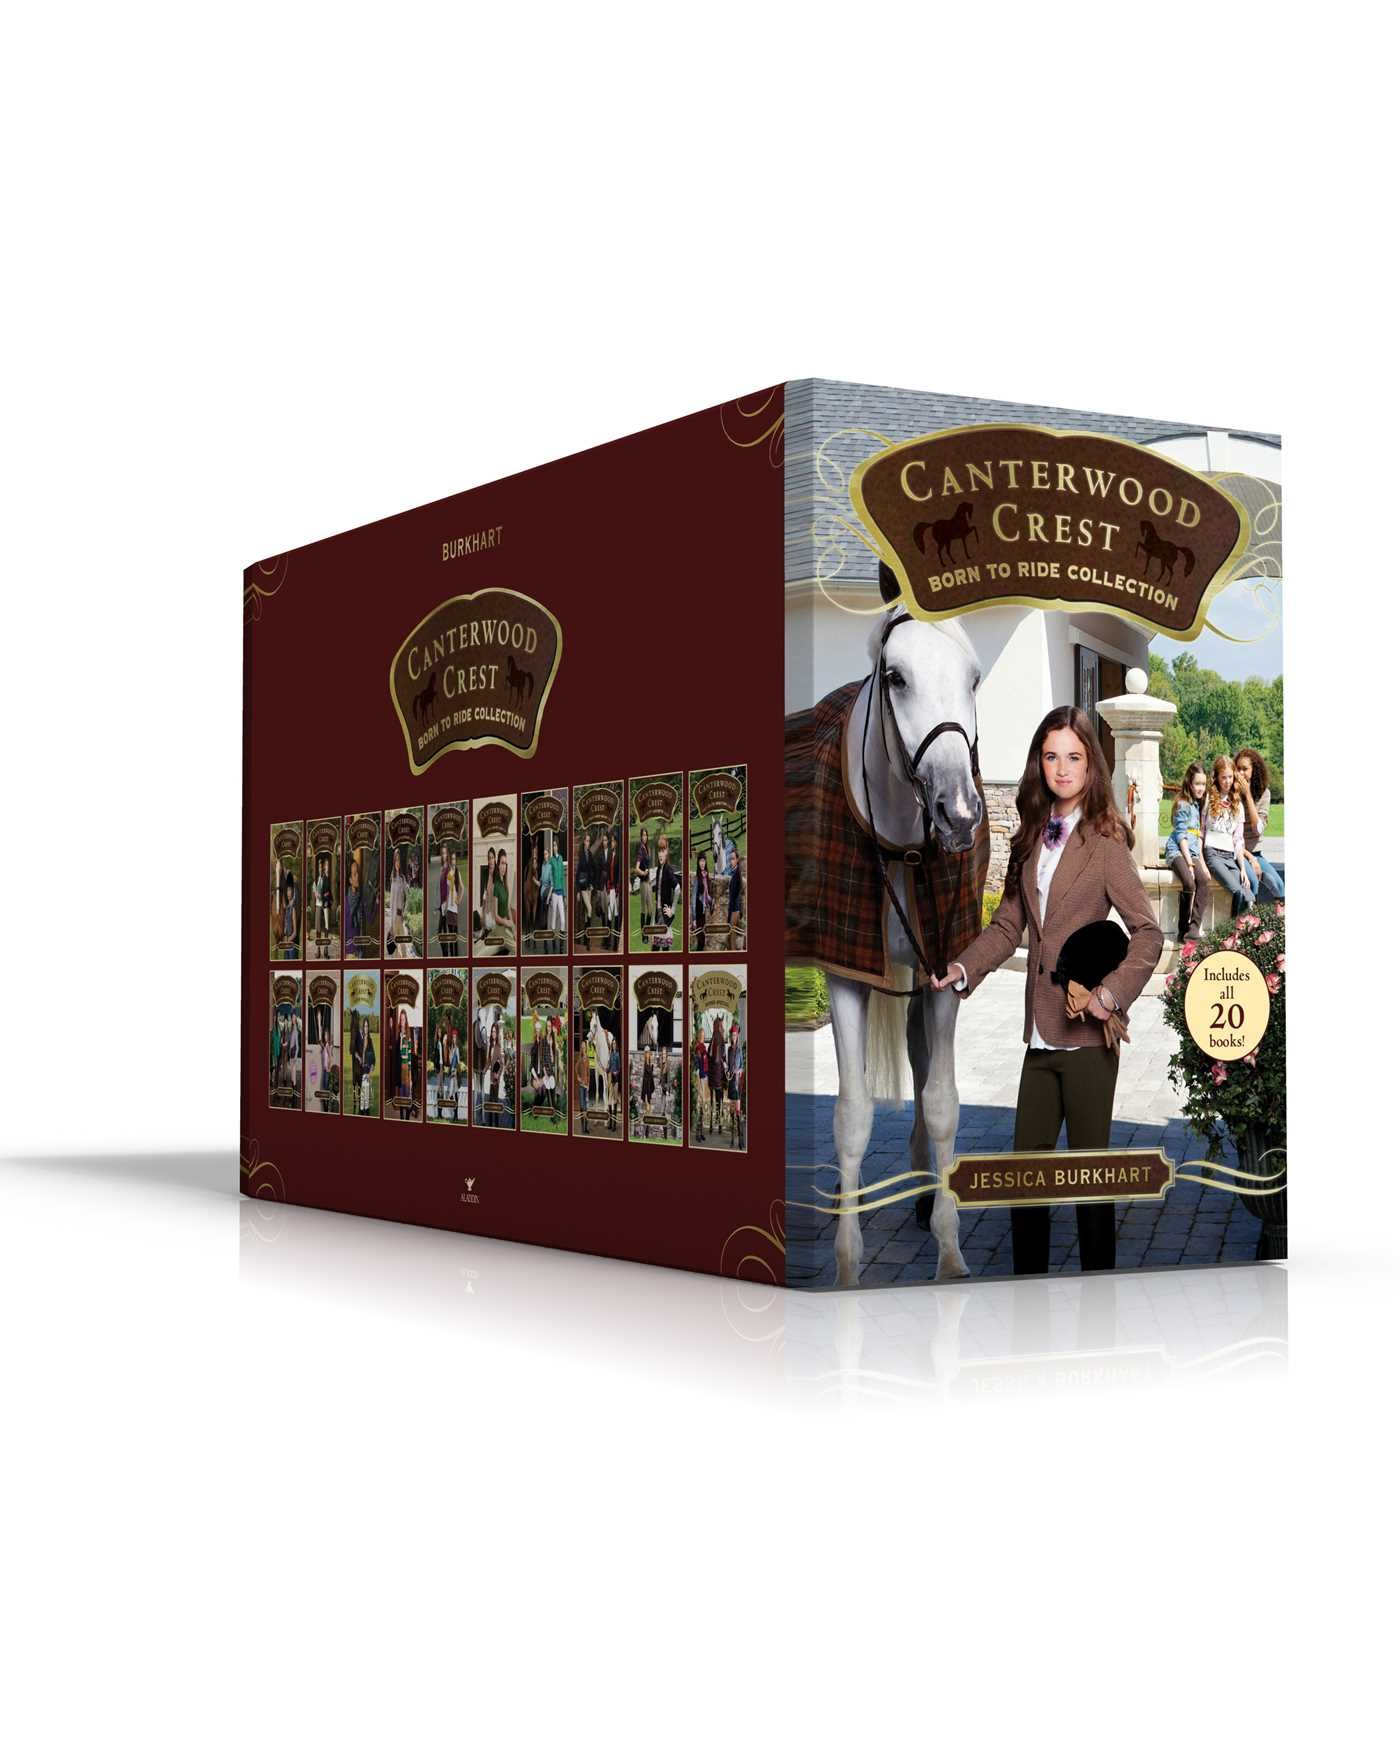 Canterwood Crest Born to Ride Collection: Take the Reins; Chasing Blue; Behind the Bit; Triple Fault; Best Enemies; Little White Lies; Rival Revenge; ... Chosen; Initiation; Popular; Comeback; etc.